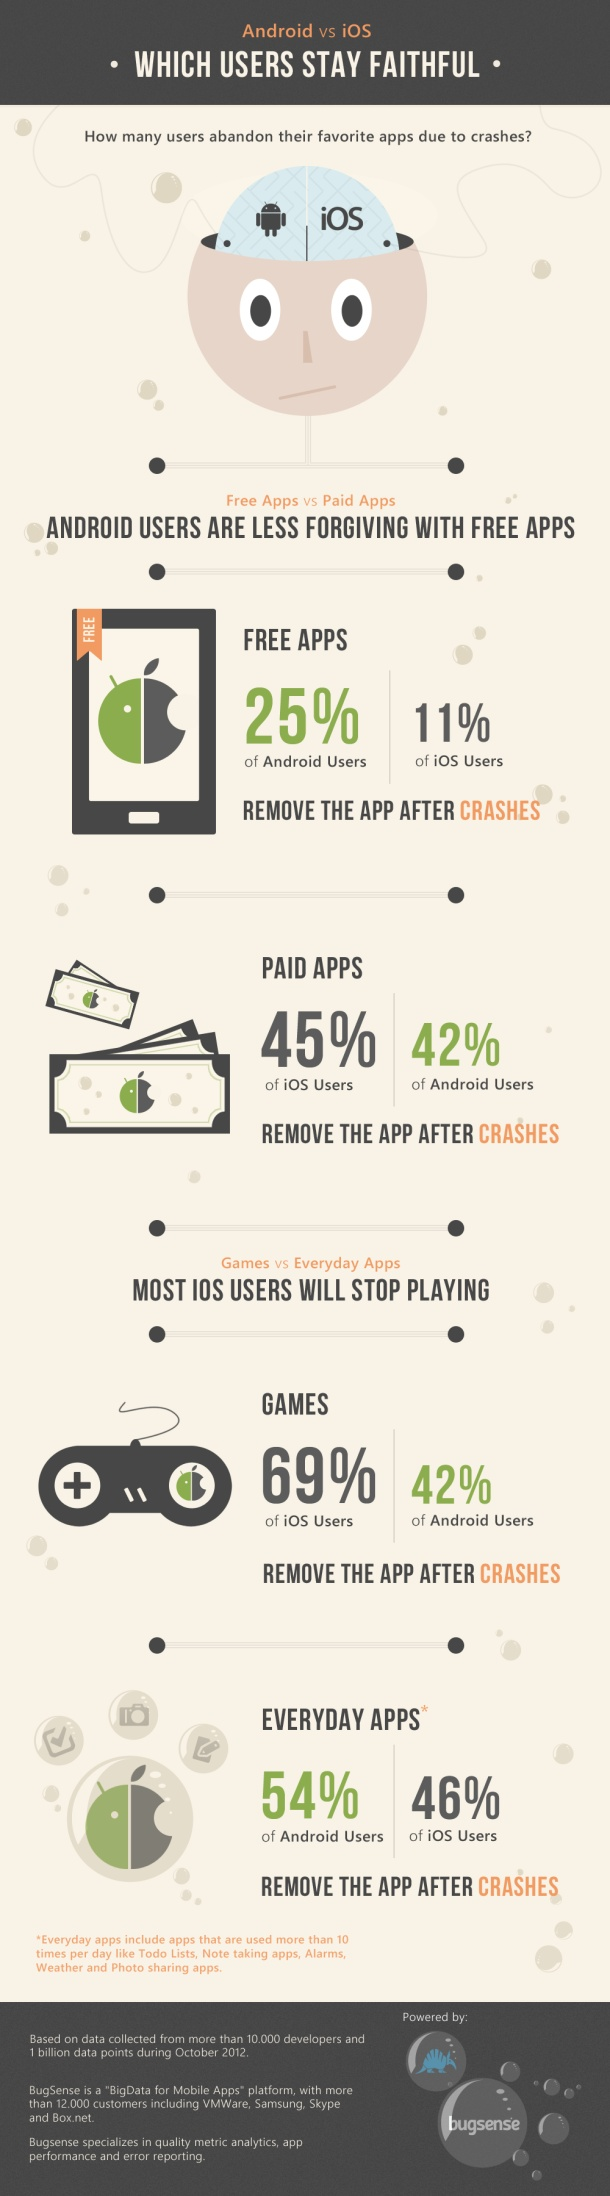 #Android vs #iOS: which users stay faithful (infographic)